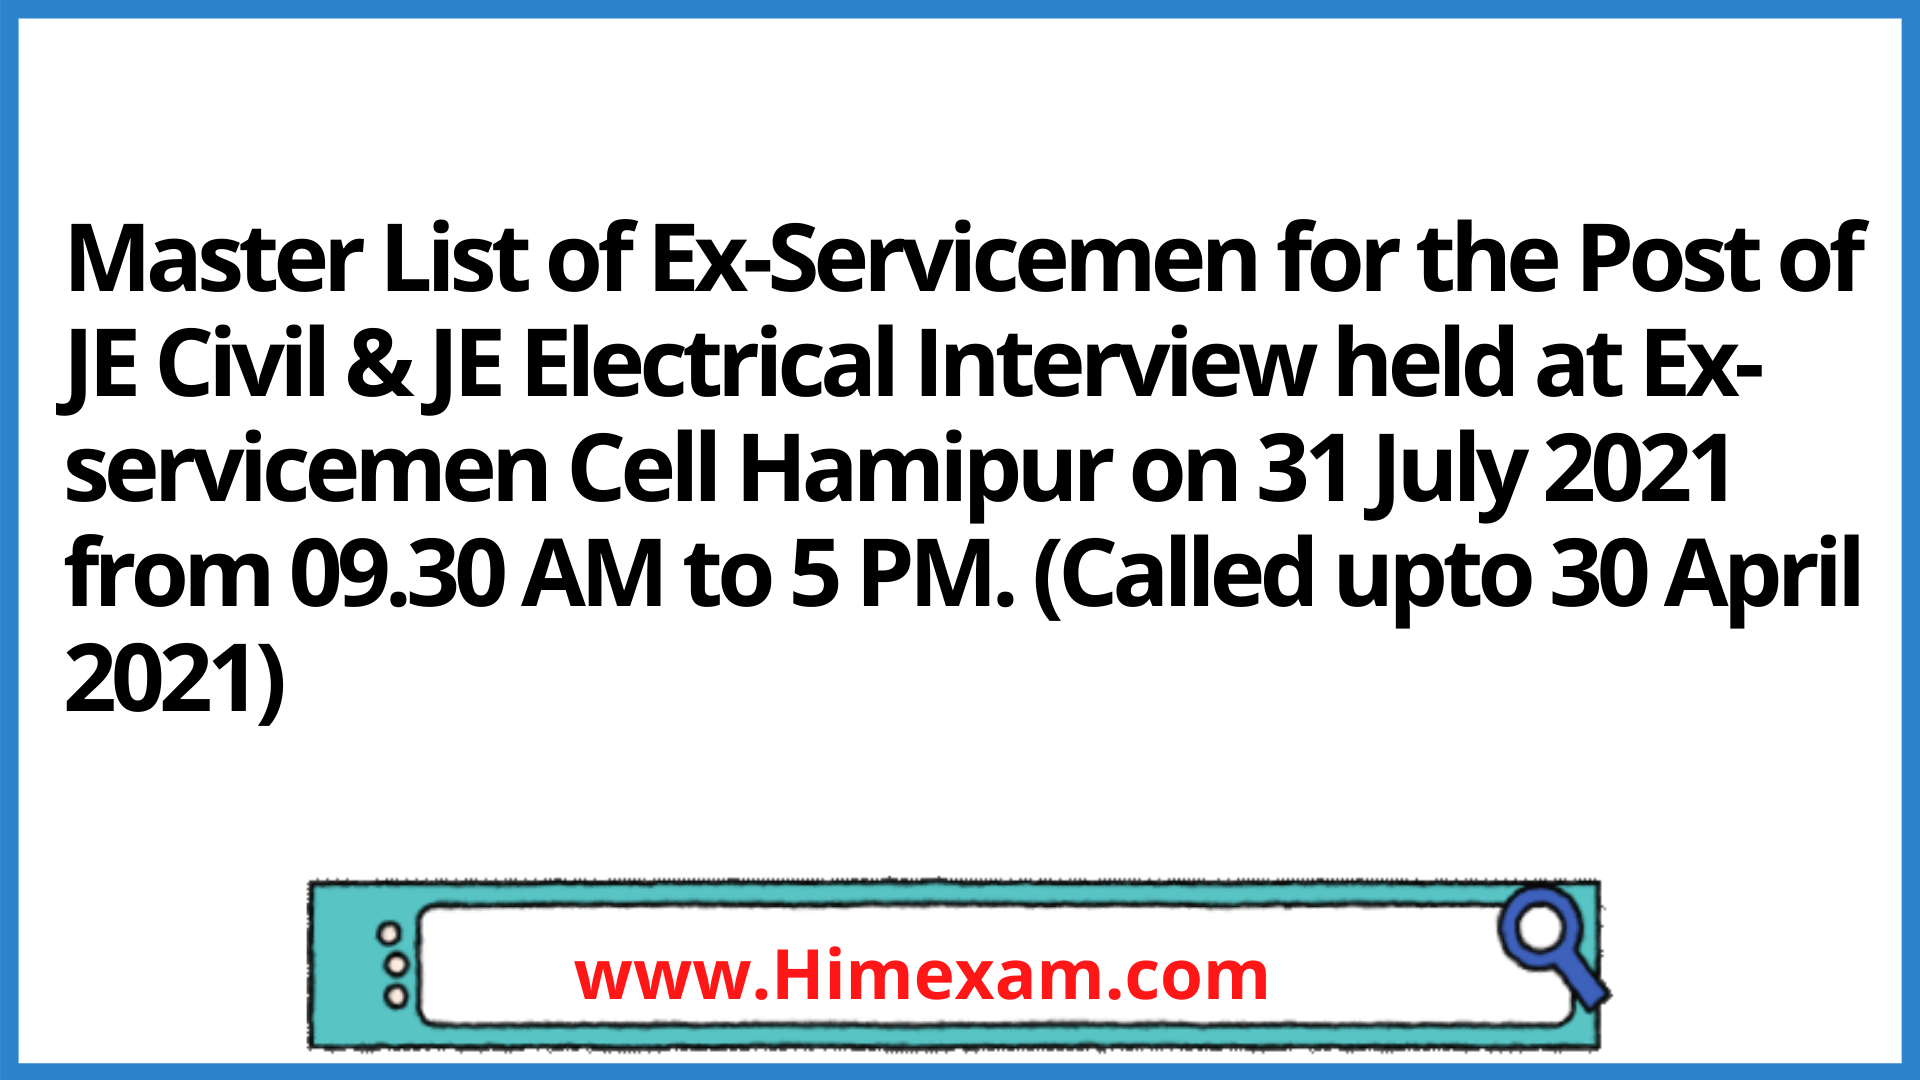 Master List of Ex-Servicemen for the Post of JE Civil & JE Electrical Interview held at Ex-servicemen Cell Hamipur on 31 July 2021 from 09.30 AM to 5 PM. (Called upto 30 April 2021)